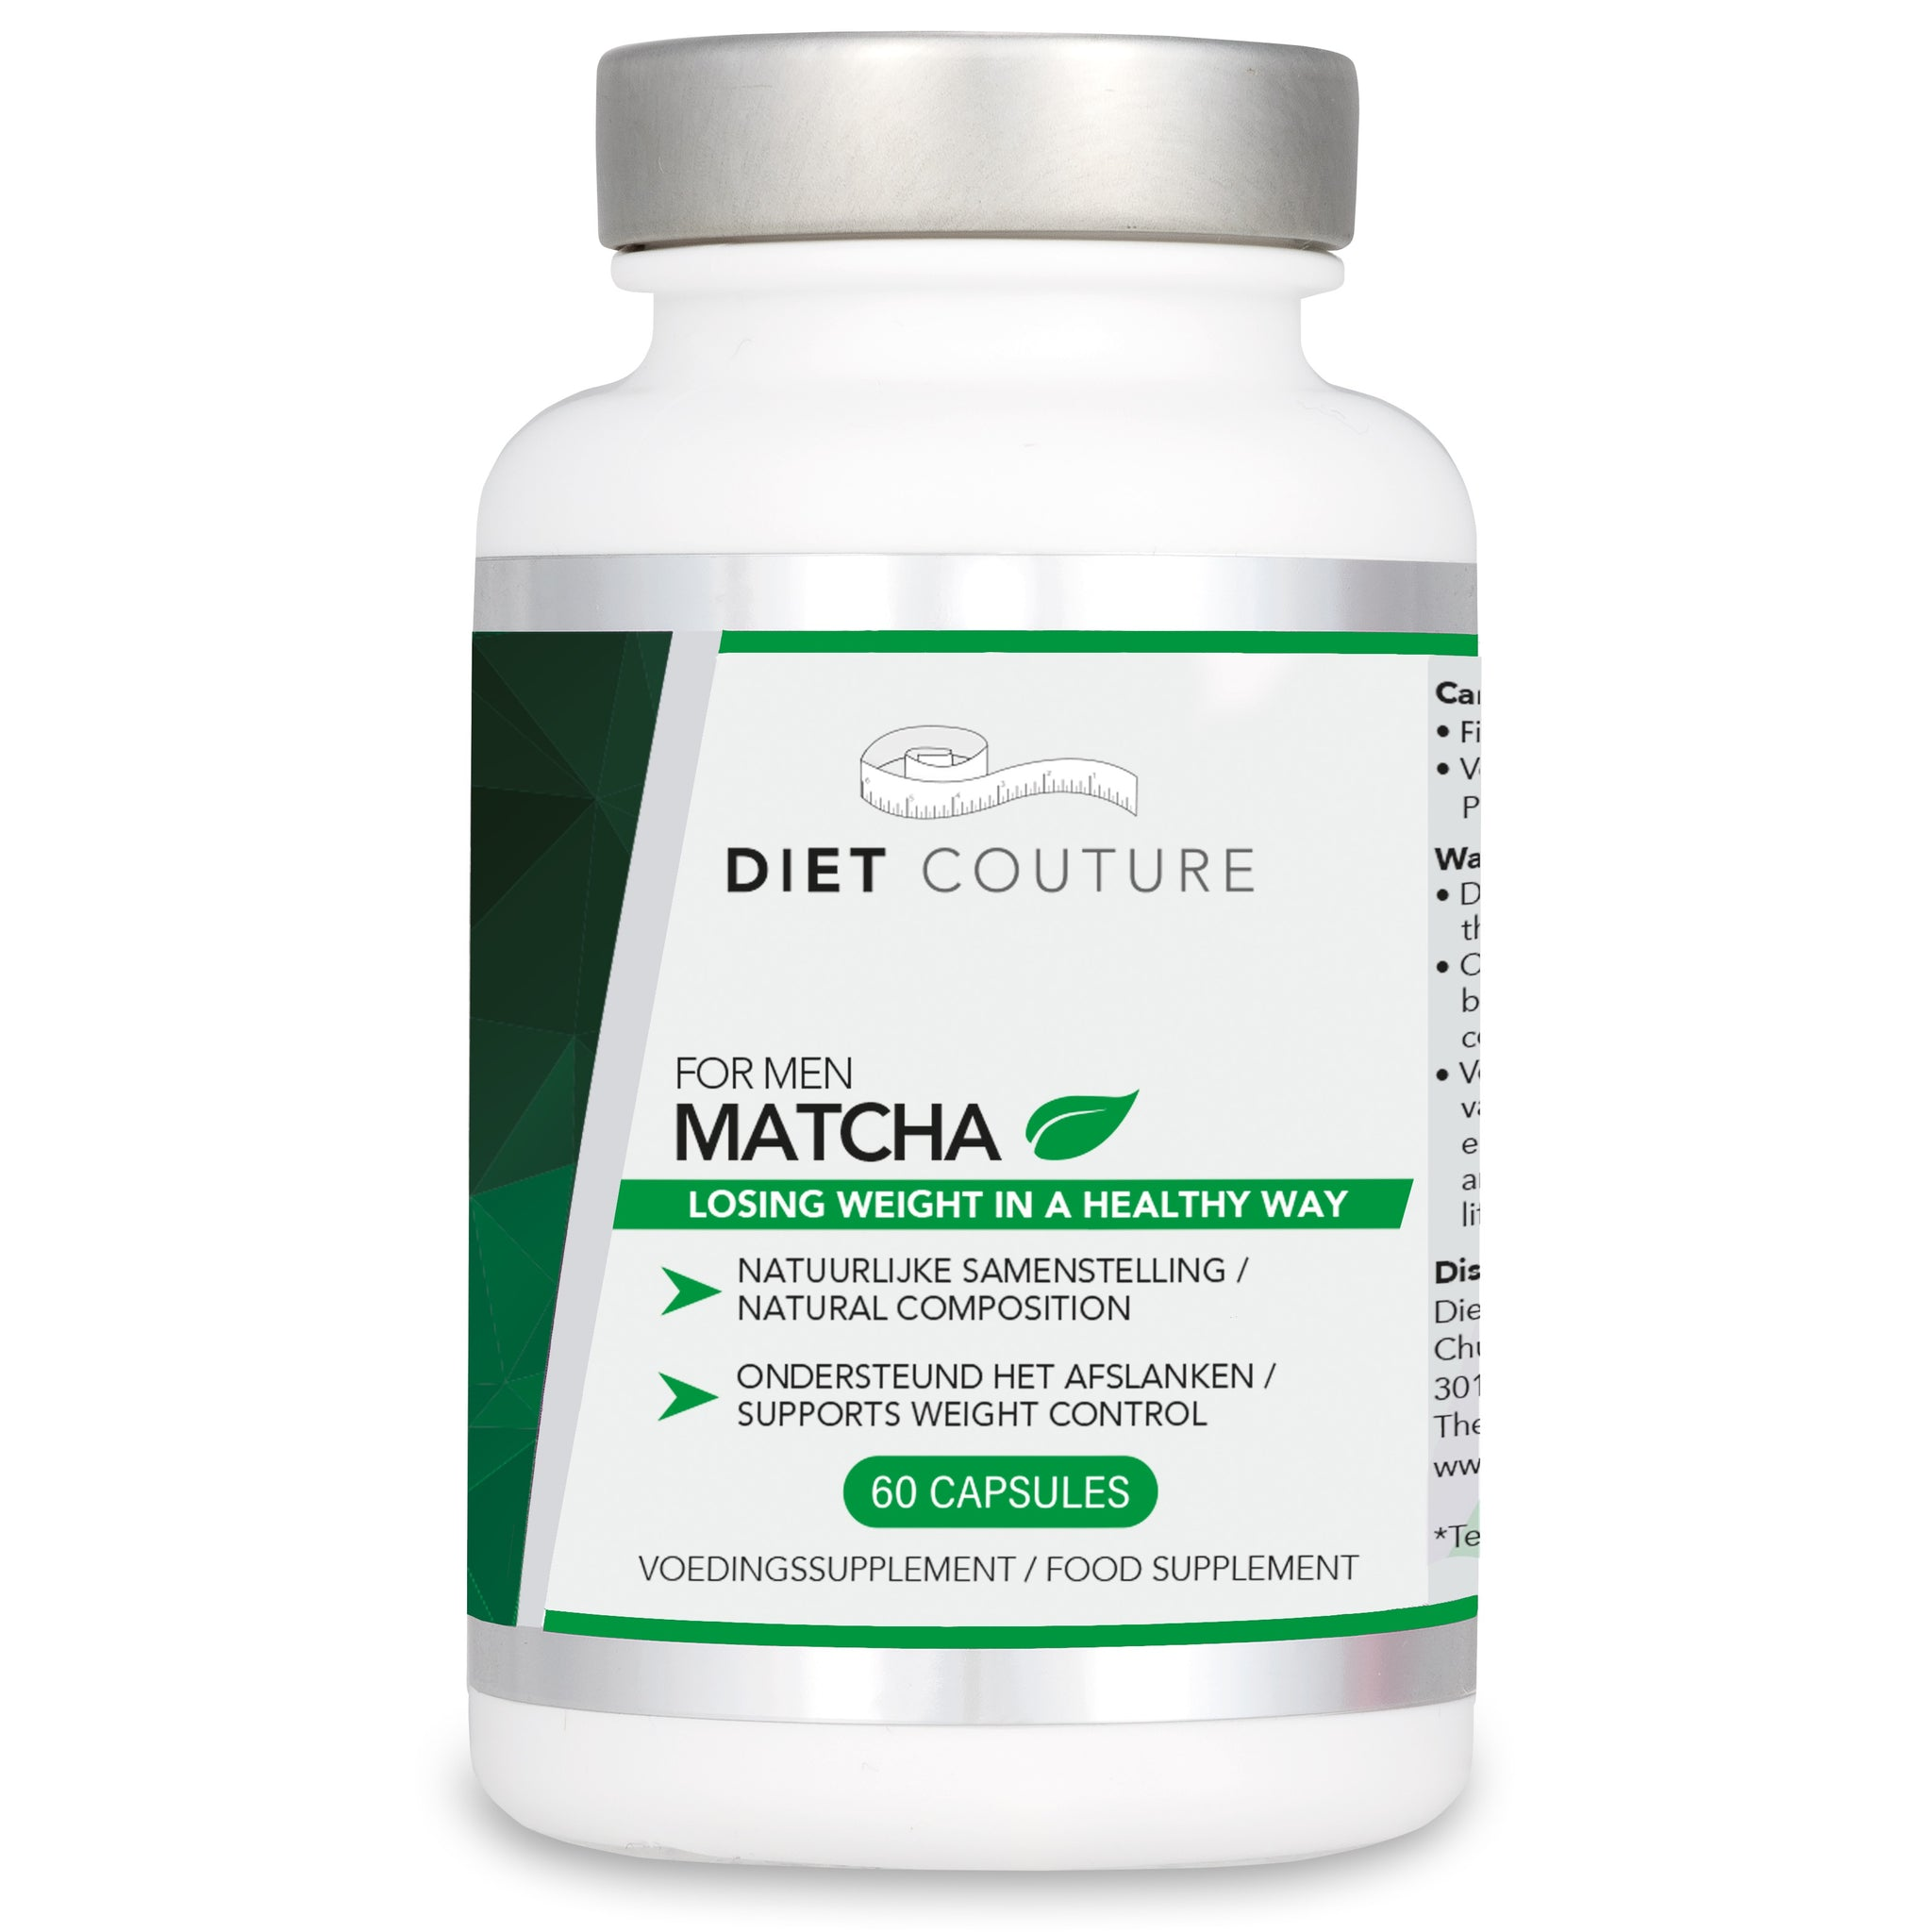 NEW: Matcha for men - health box